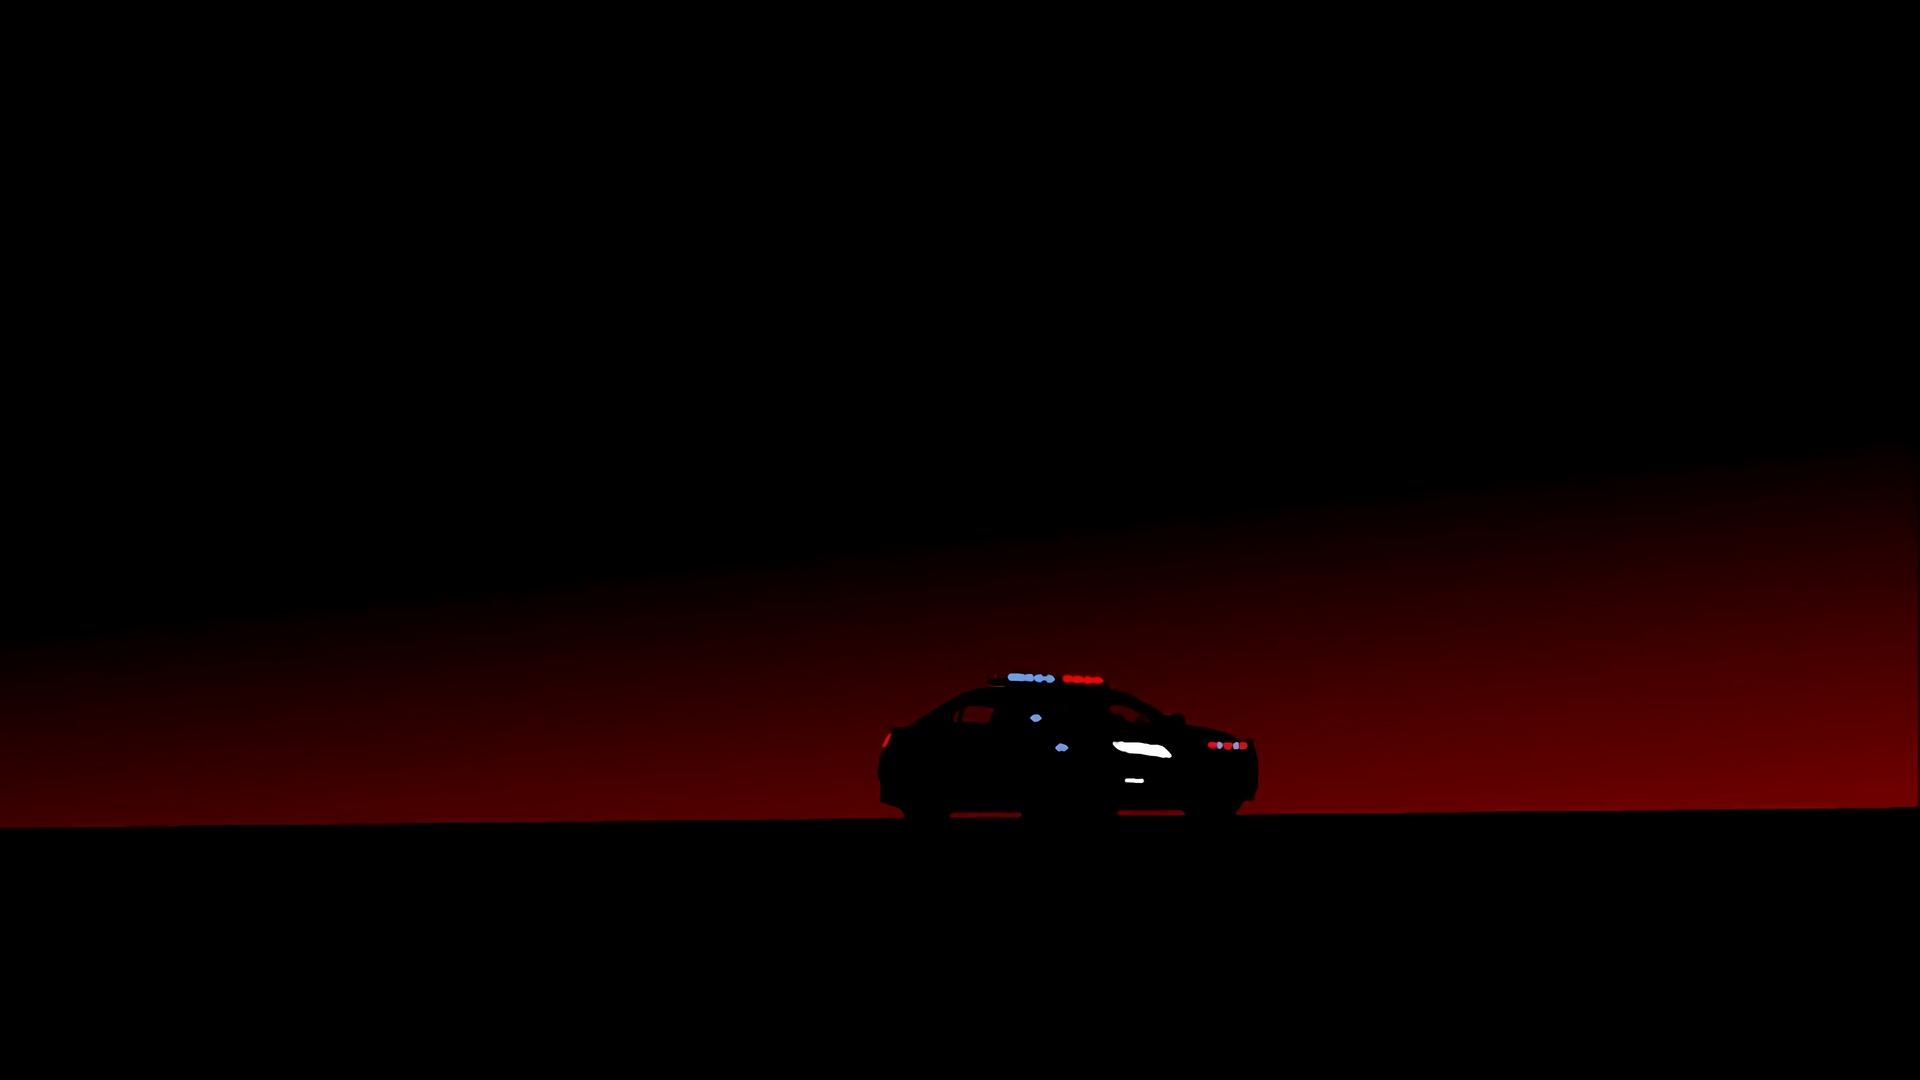 Wallpaper Car, Art, Outlines, Minimalism, Night - Car Minimalist Wallpaper 1080p , HD Wallpaper & Backgrounds